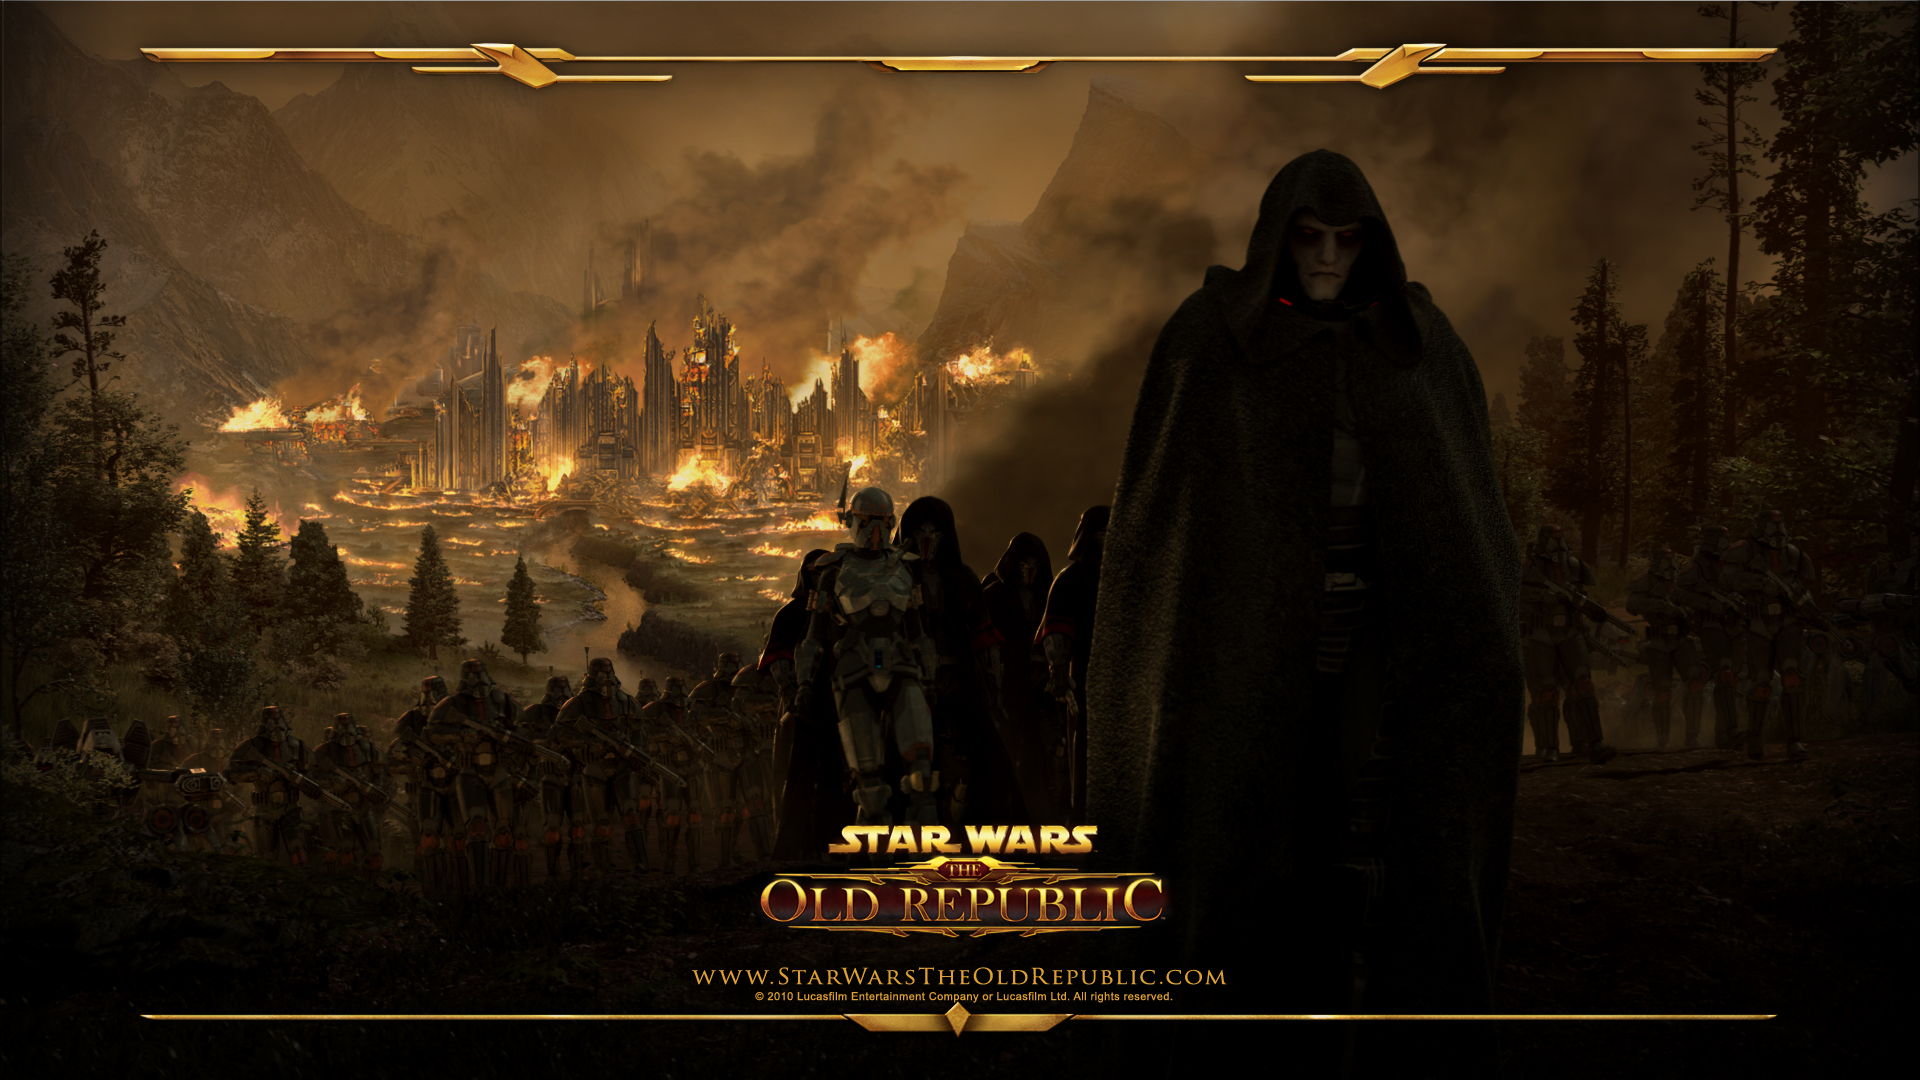 Kotor Fan Art Ways Of The World Hd Star Wars The Old Republic 1920x1080 Wallpaper Teahub Io